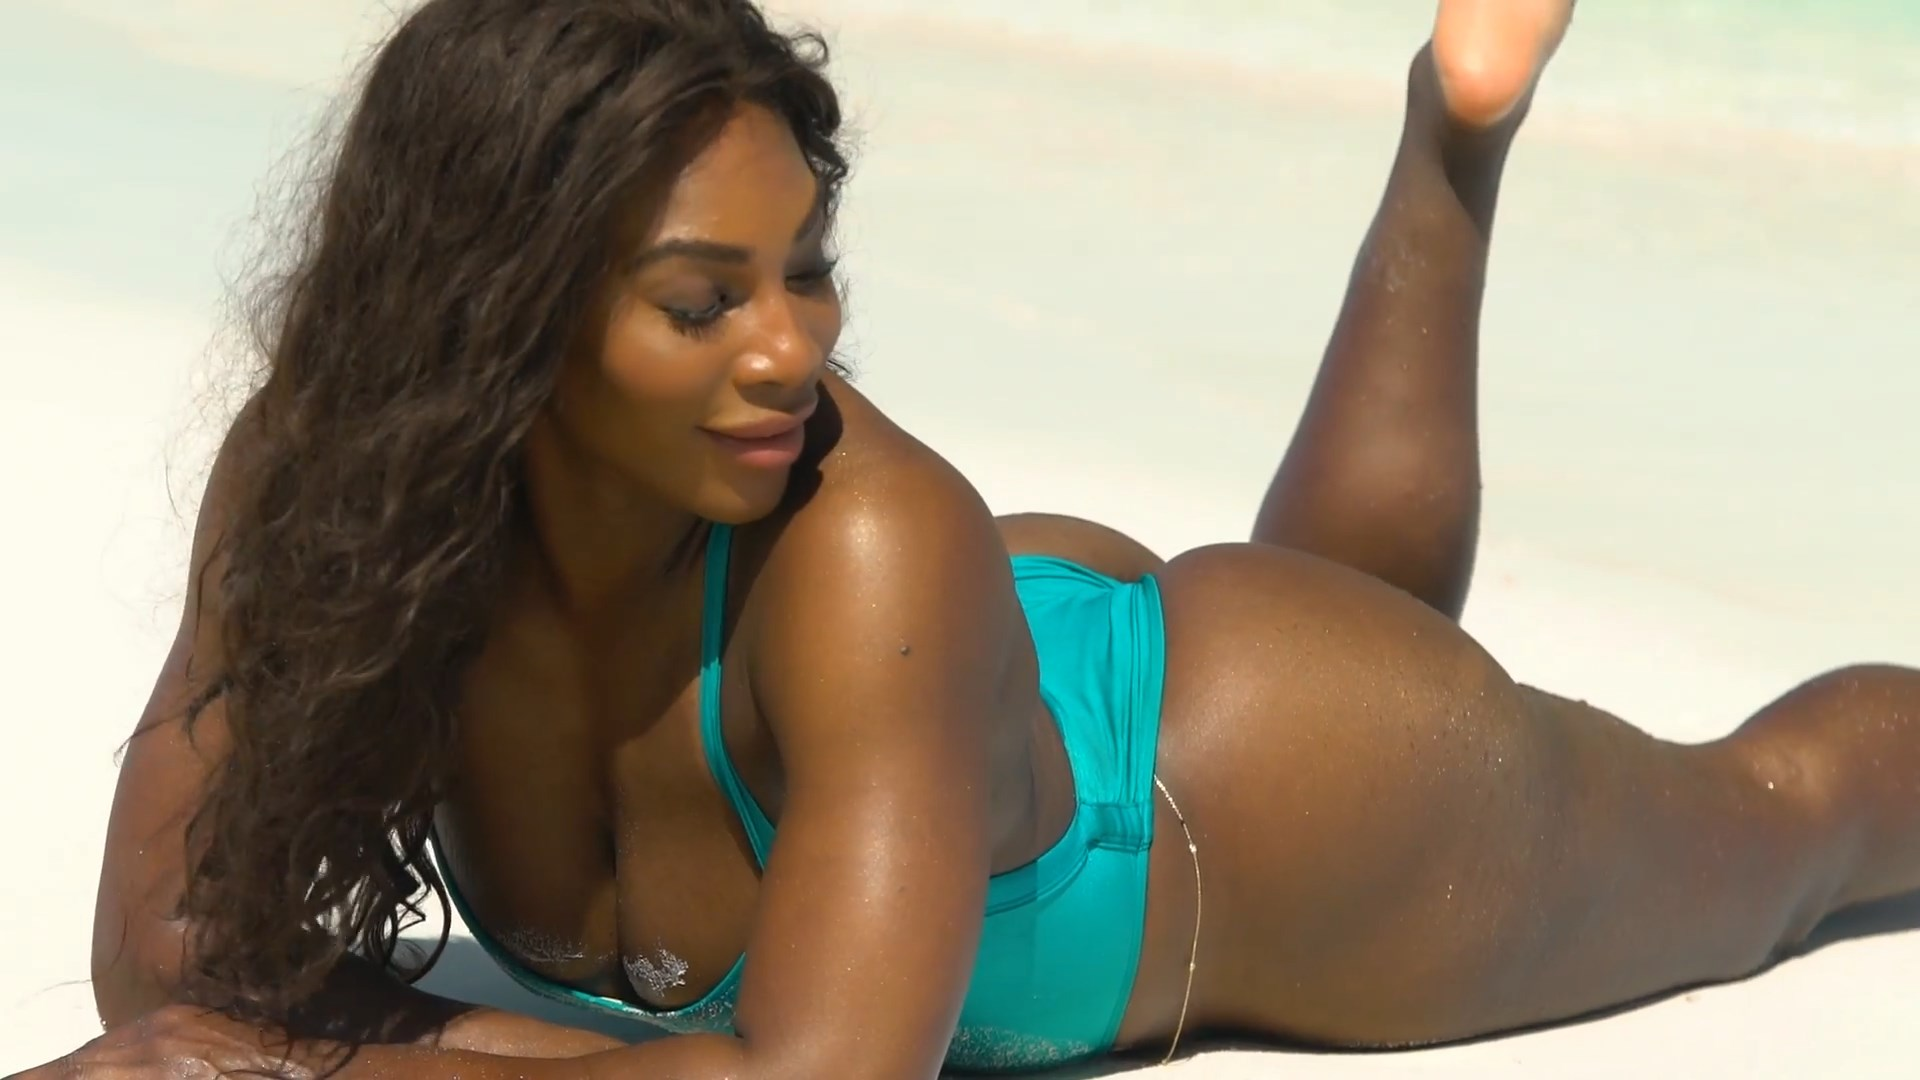 Ding Tennis Player Serena Williams Naked Leaked Photos -9512